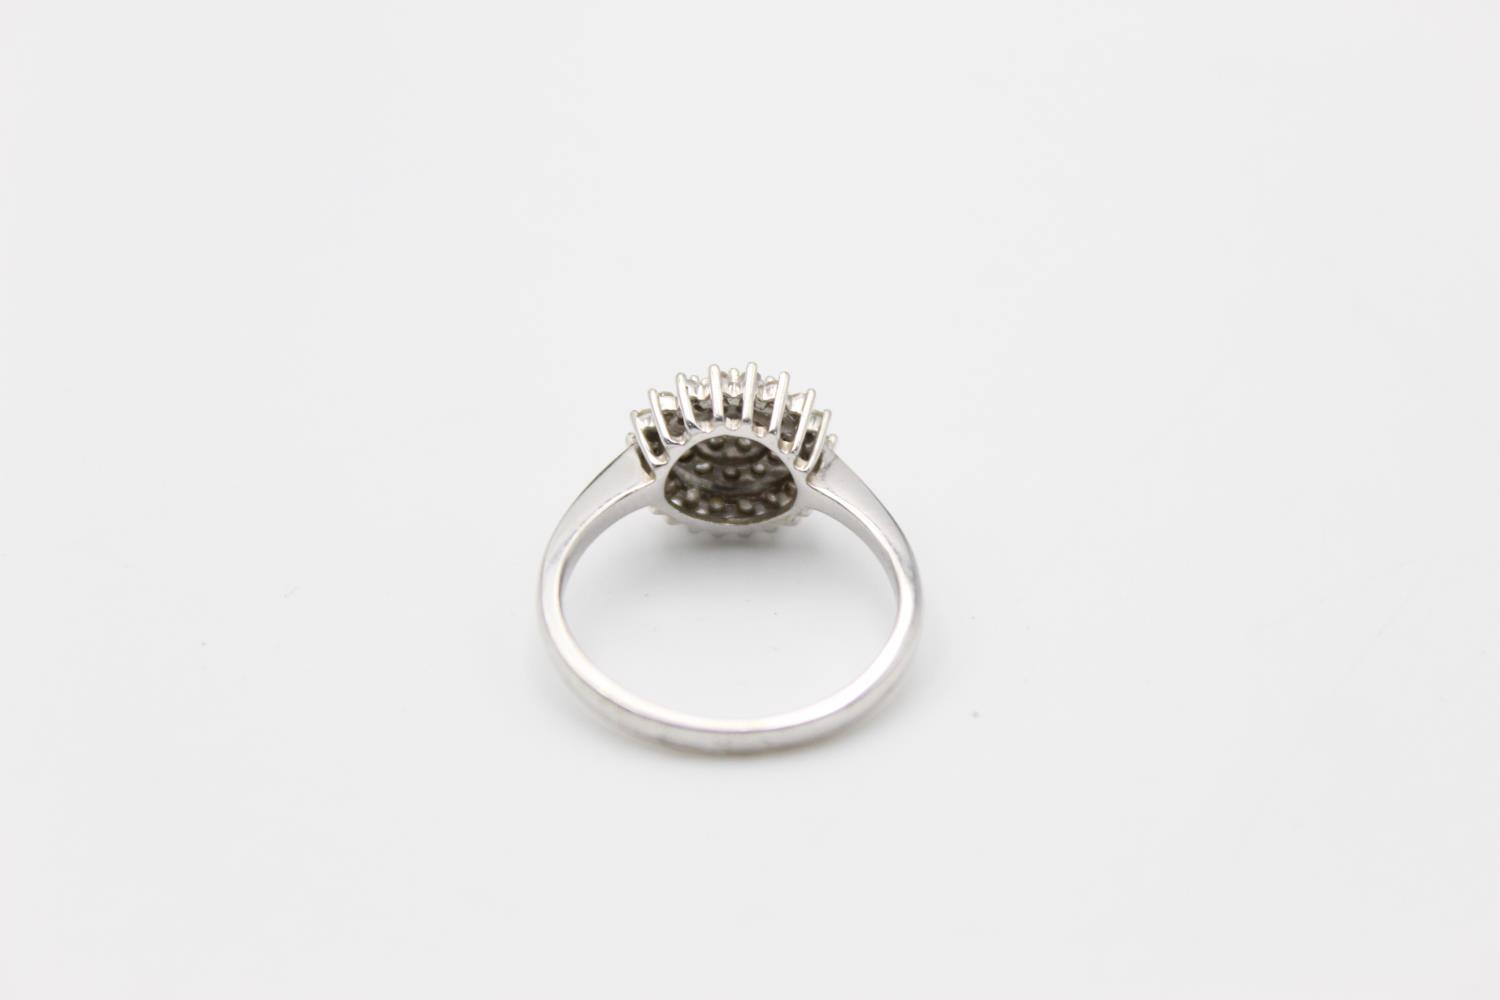 9ct white gold diamond cluster ring 3.4g Size P - Image 3 of 5